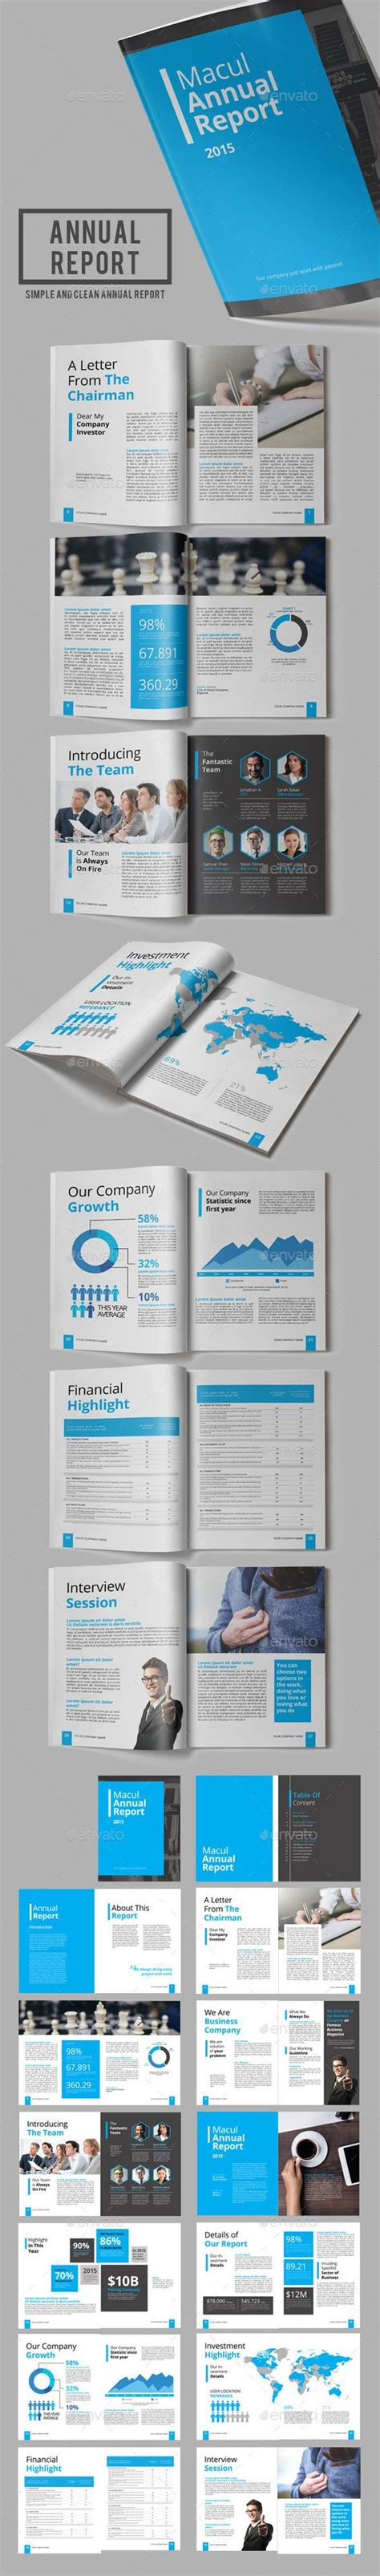 Https Graphicriver Net Item Divided Annual Report Template 13185075 The World S Catalog Of Ideas